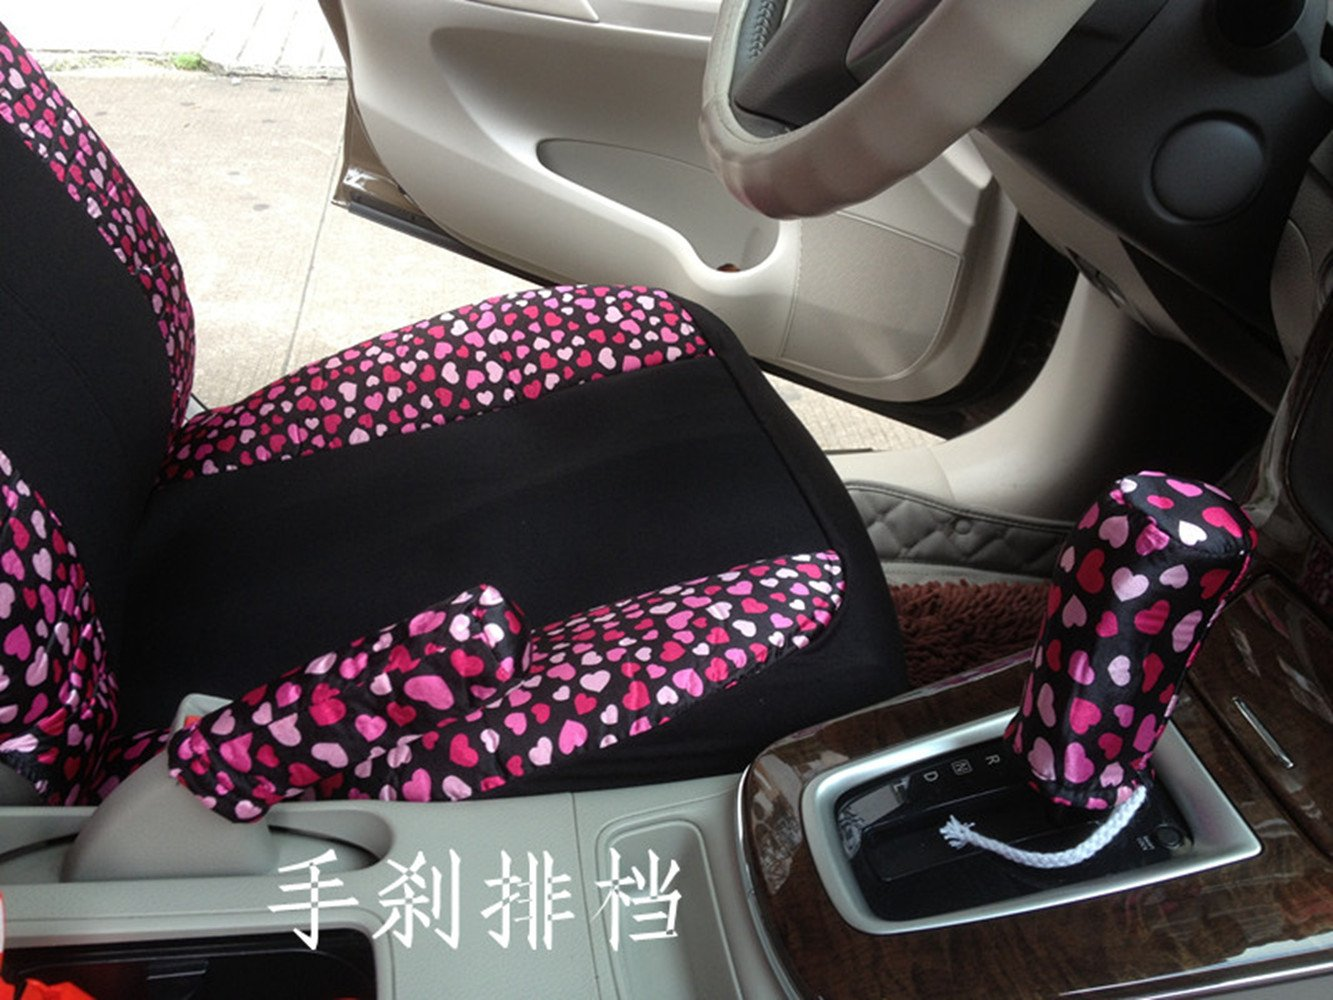 Black/Peach Bow Front Rear Car Seat Cushion Cover Black&Gold 18pcs Full Set Needlework by GH8 (Image #3)